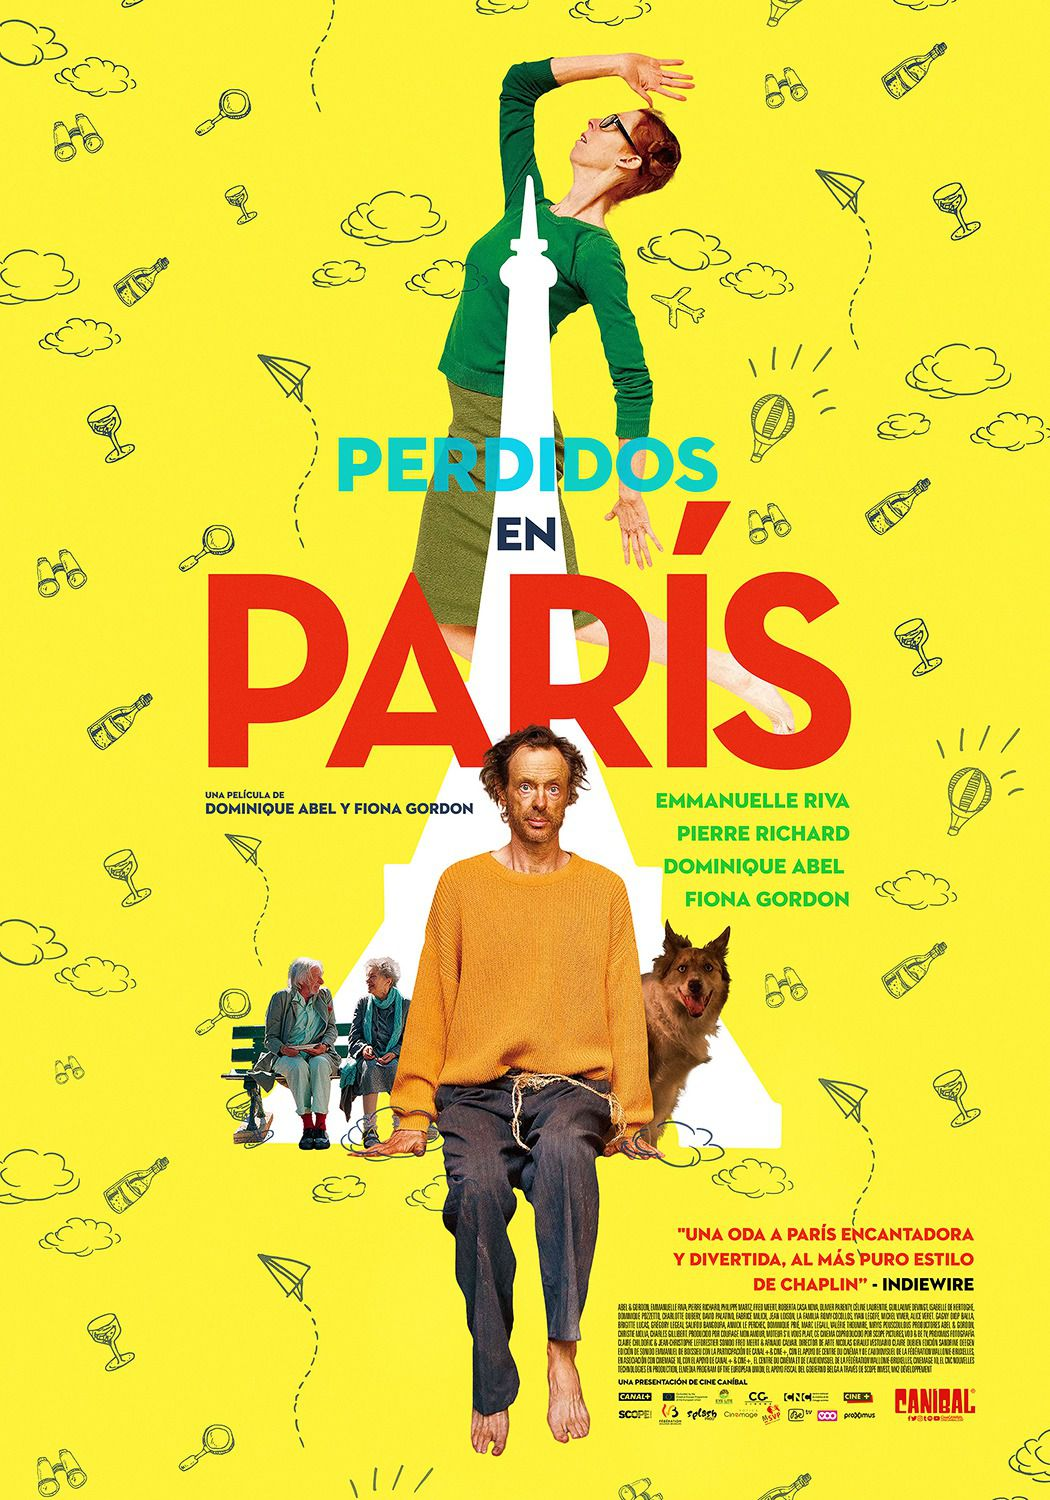 Lost in Paris - Paris pieds nus - Parigi a piedi nudi - Fiona Gordon - Dominique Abel - Emmanuelle Riva - Pierre Richard - film poster